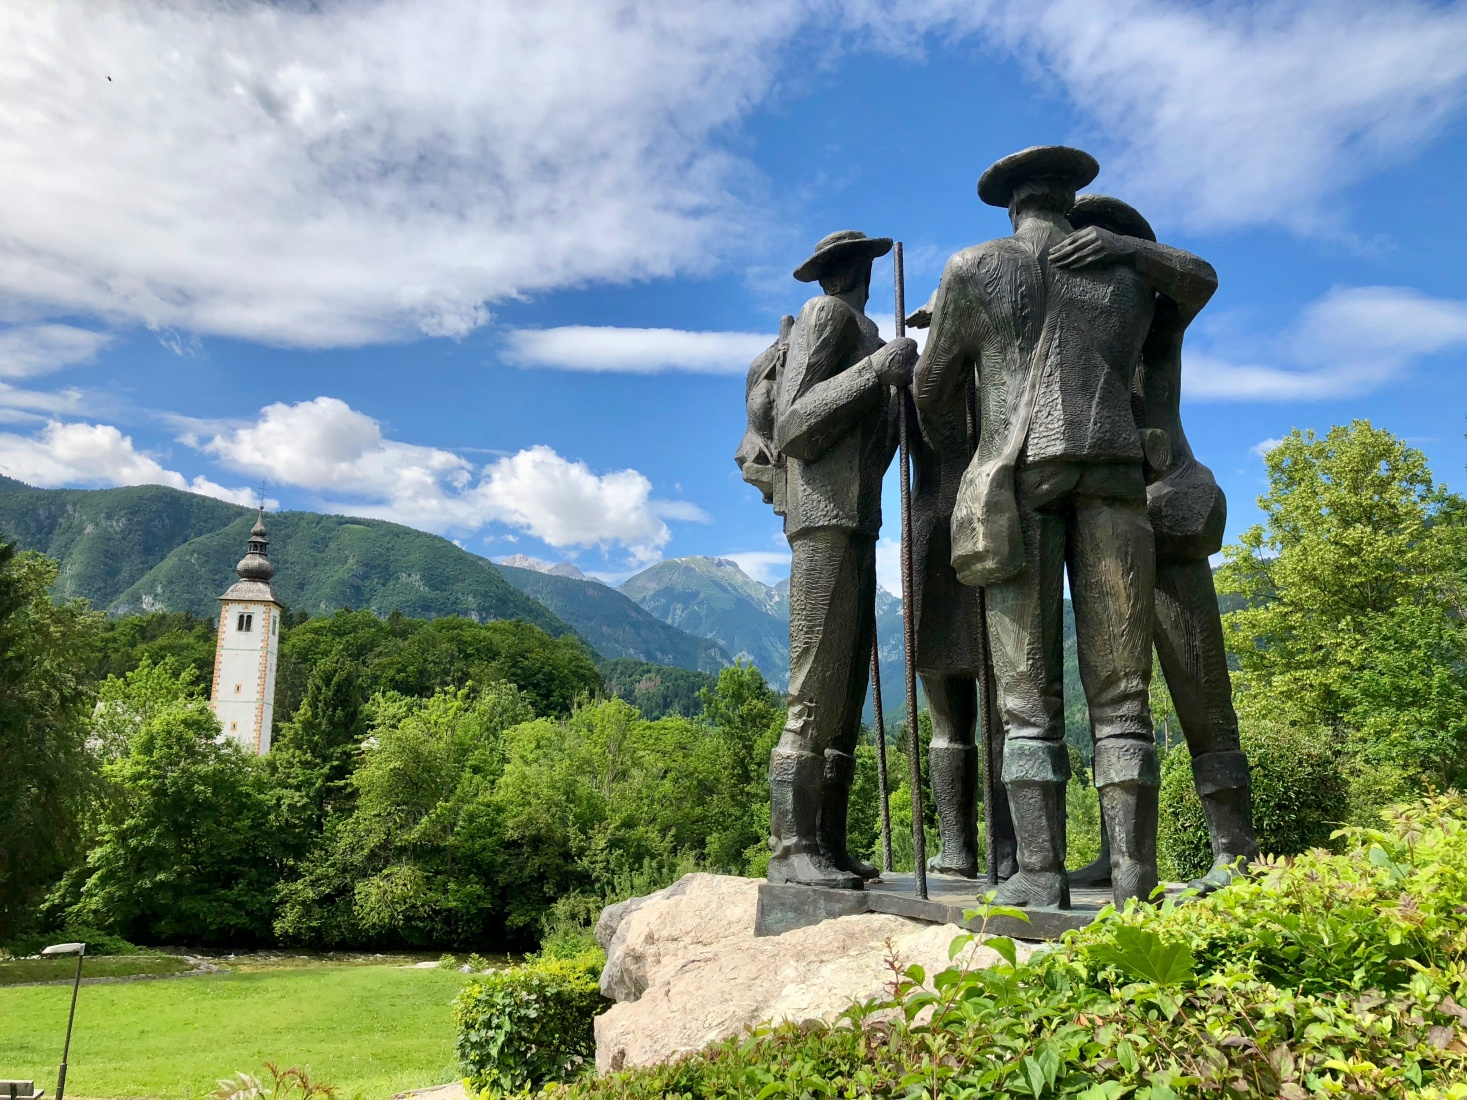 A statue of the original climbers of Mt. Triglav, who set out from Bohinj in 1778, with Triglav, Slovenia, in the background.